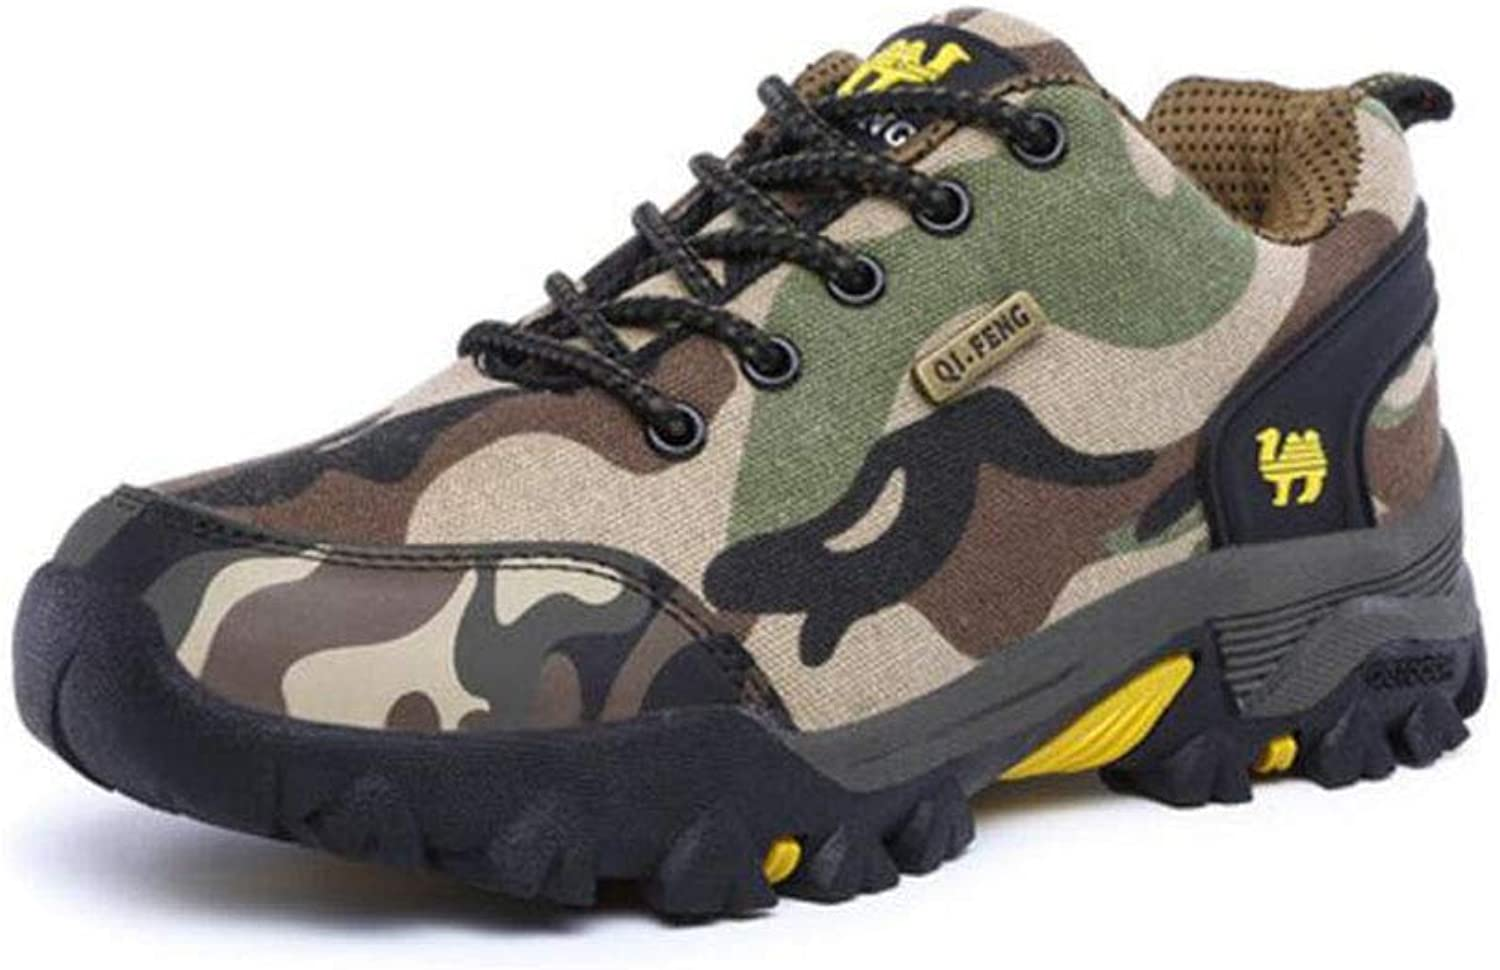 FH Camouflage Hiking shoes Female Waterproof Non-Slip Walking shoes Outdoor shoes Breathable